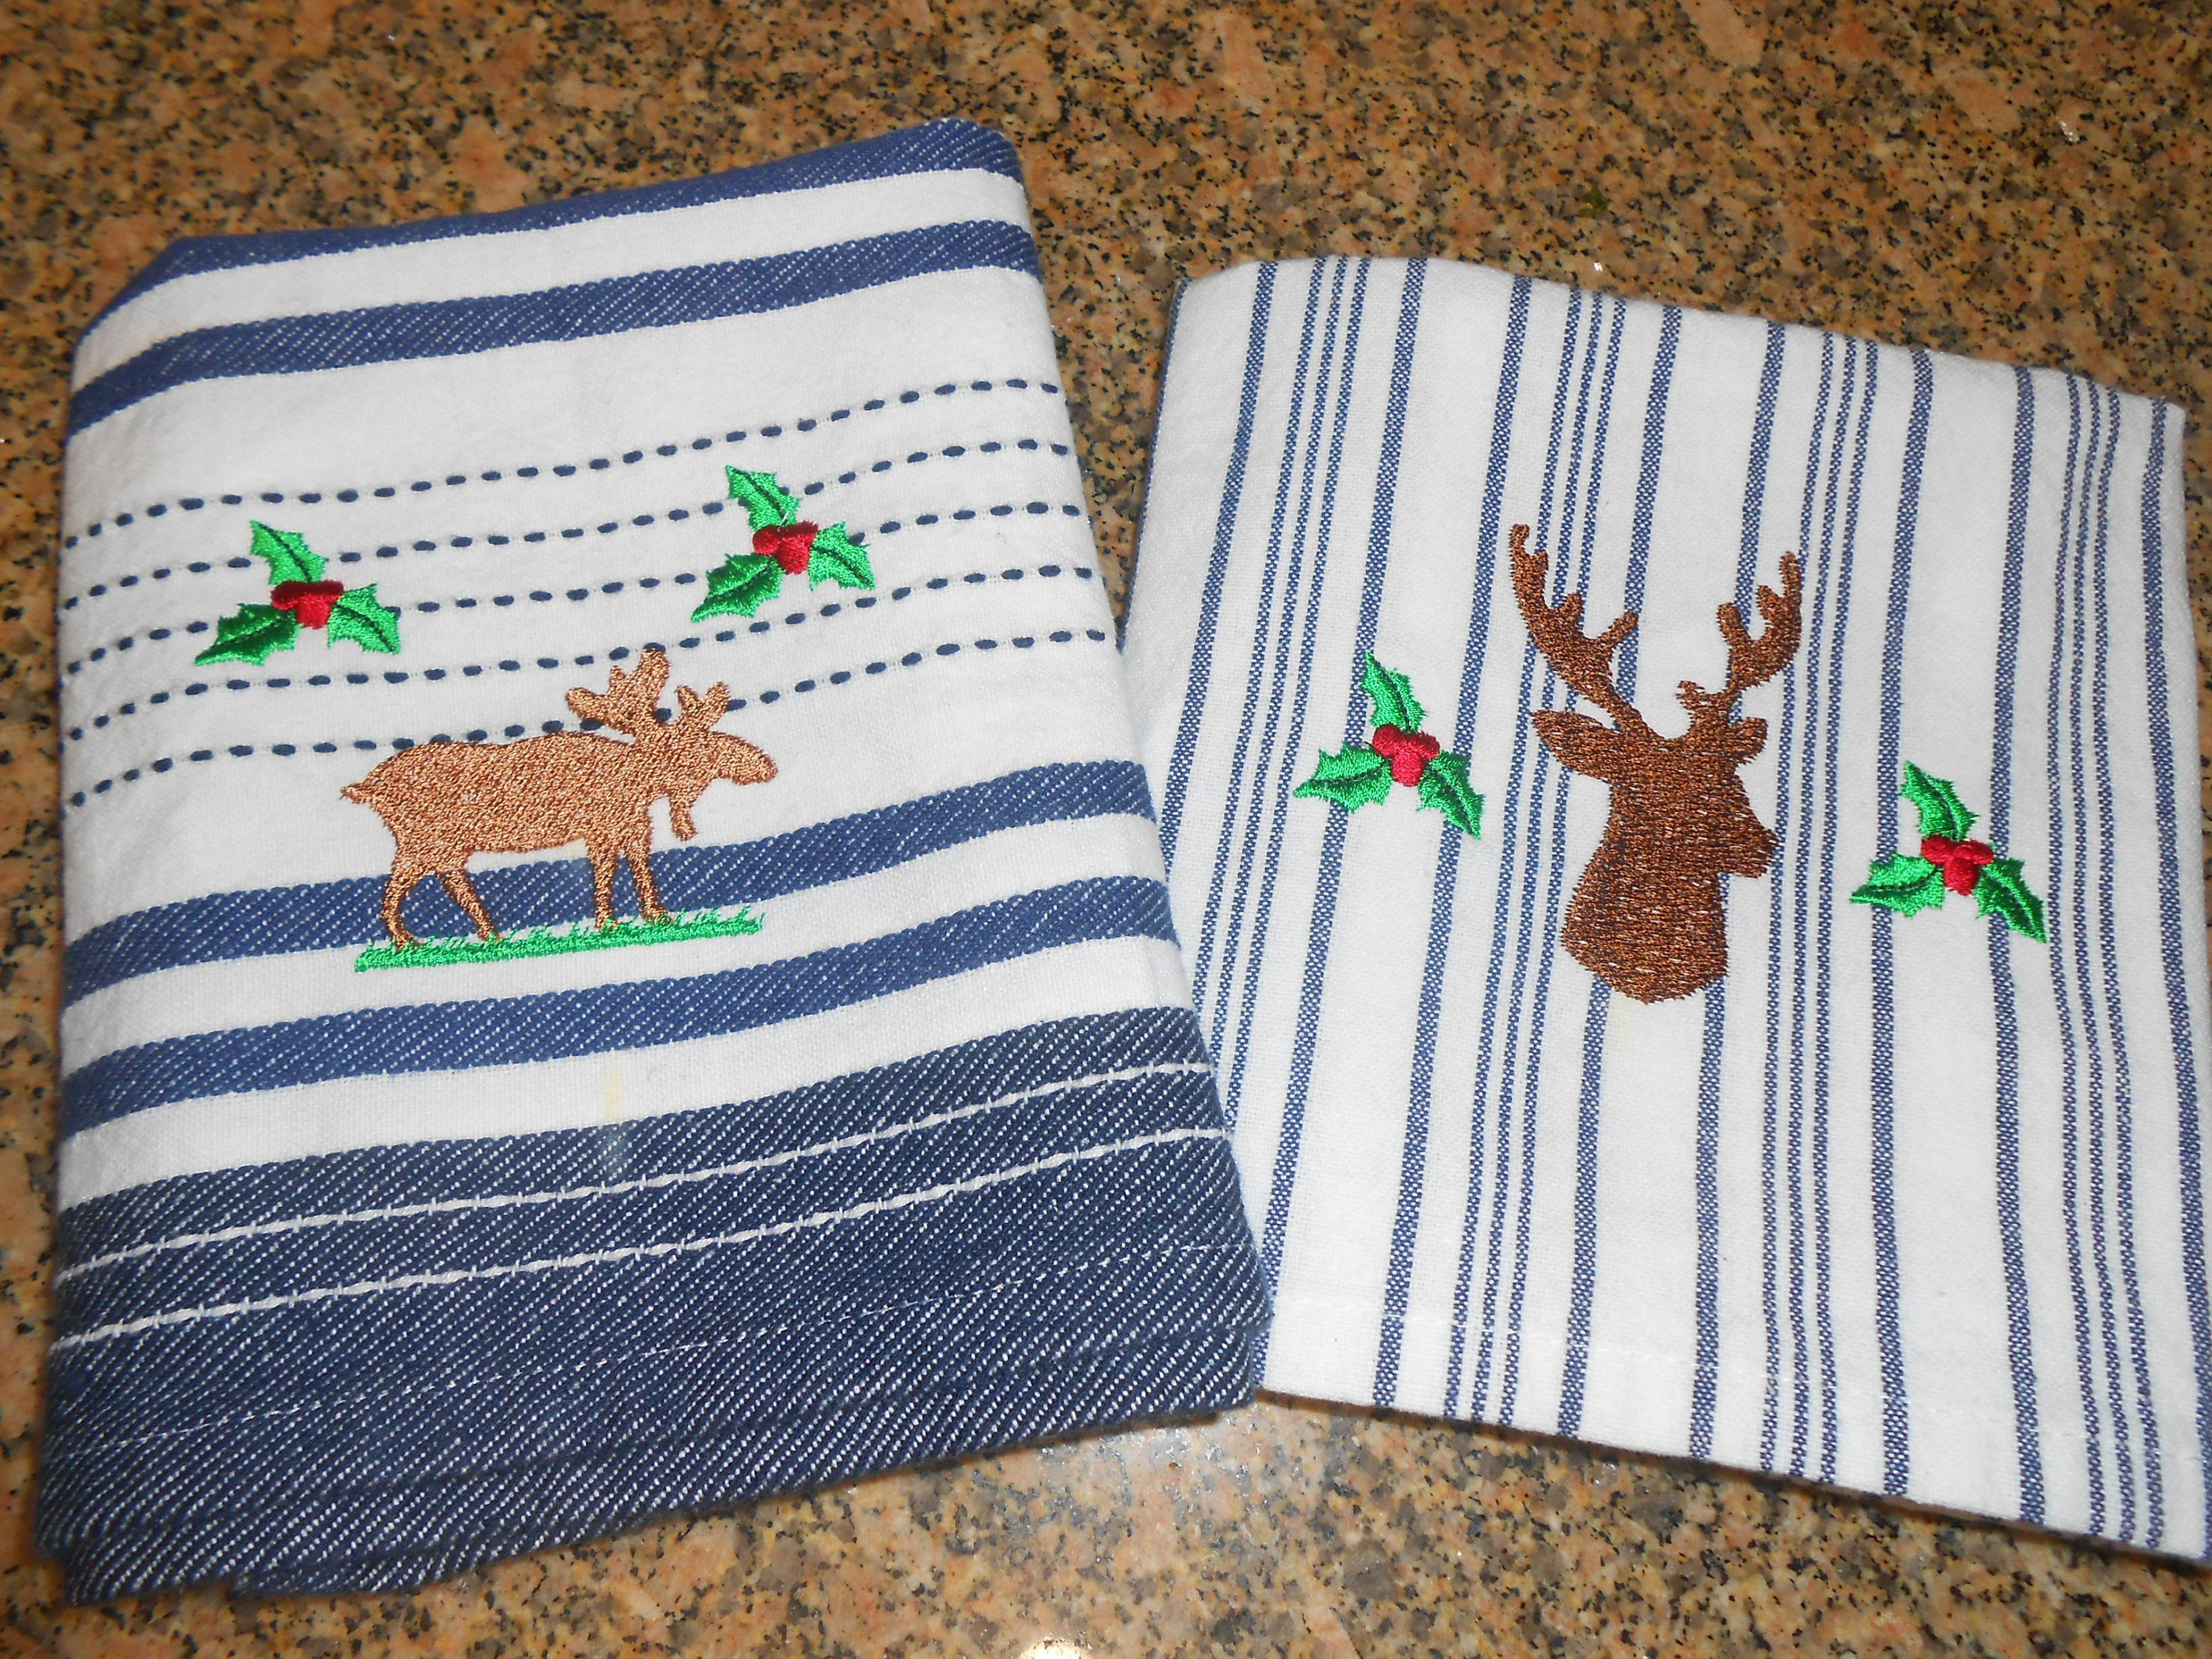 Embroidered Moose Buck Head Kitchen Towels Dish Towels Linens Kitchen Decor Gift Idea By Kitchen Decor